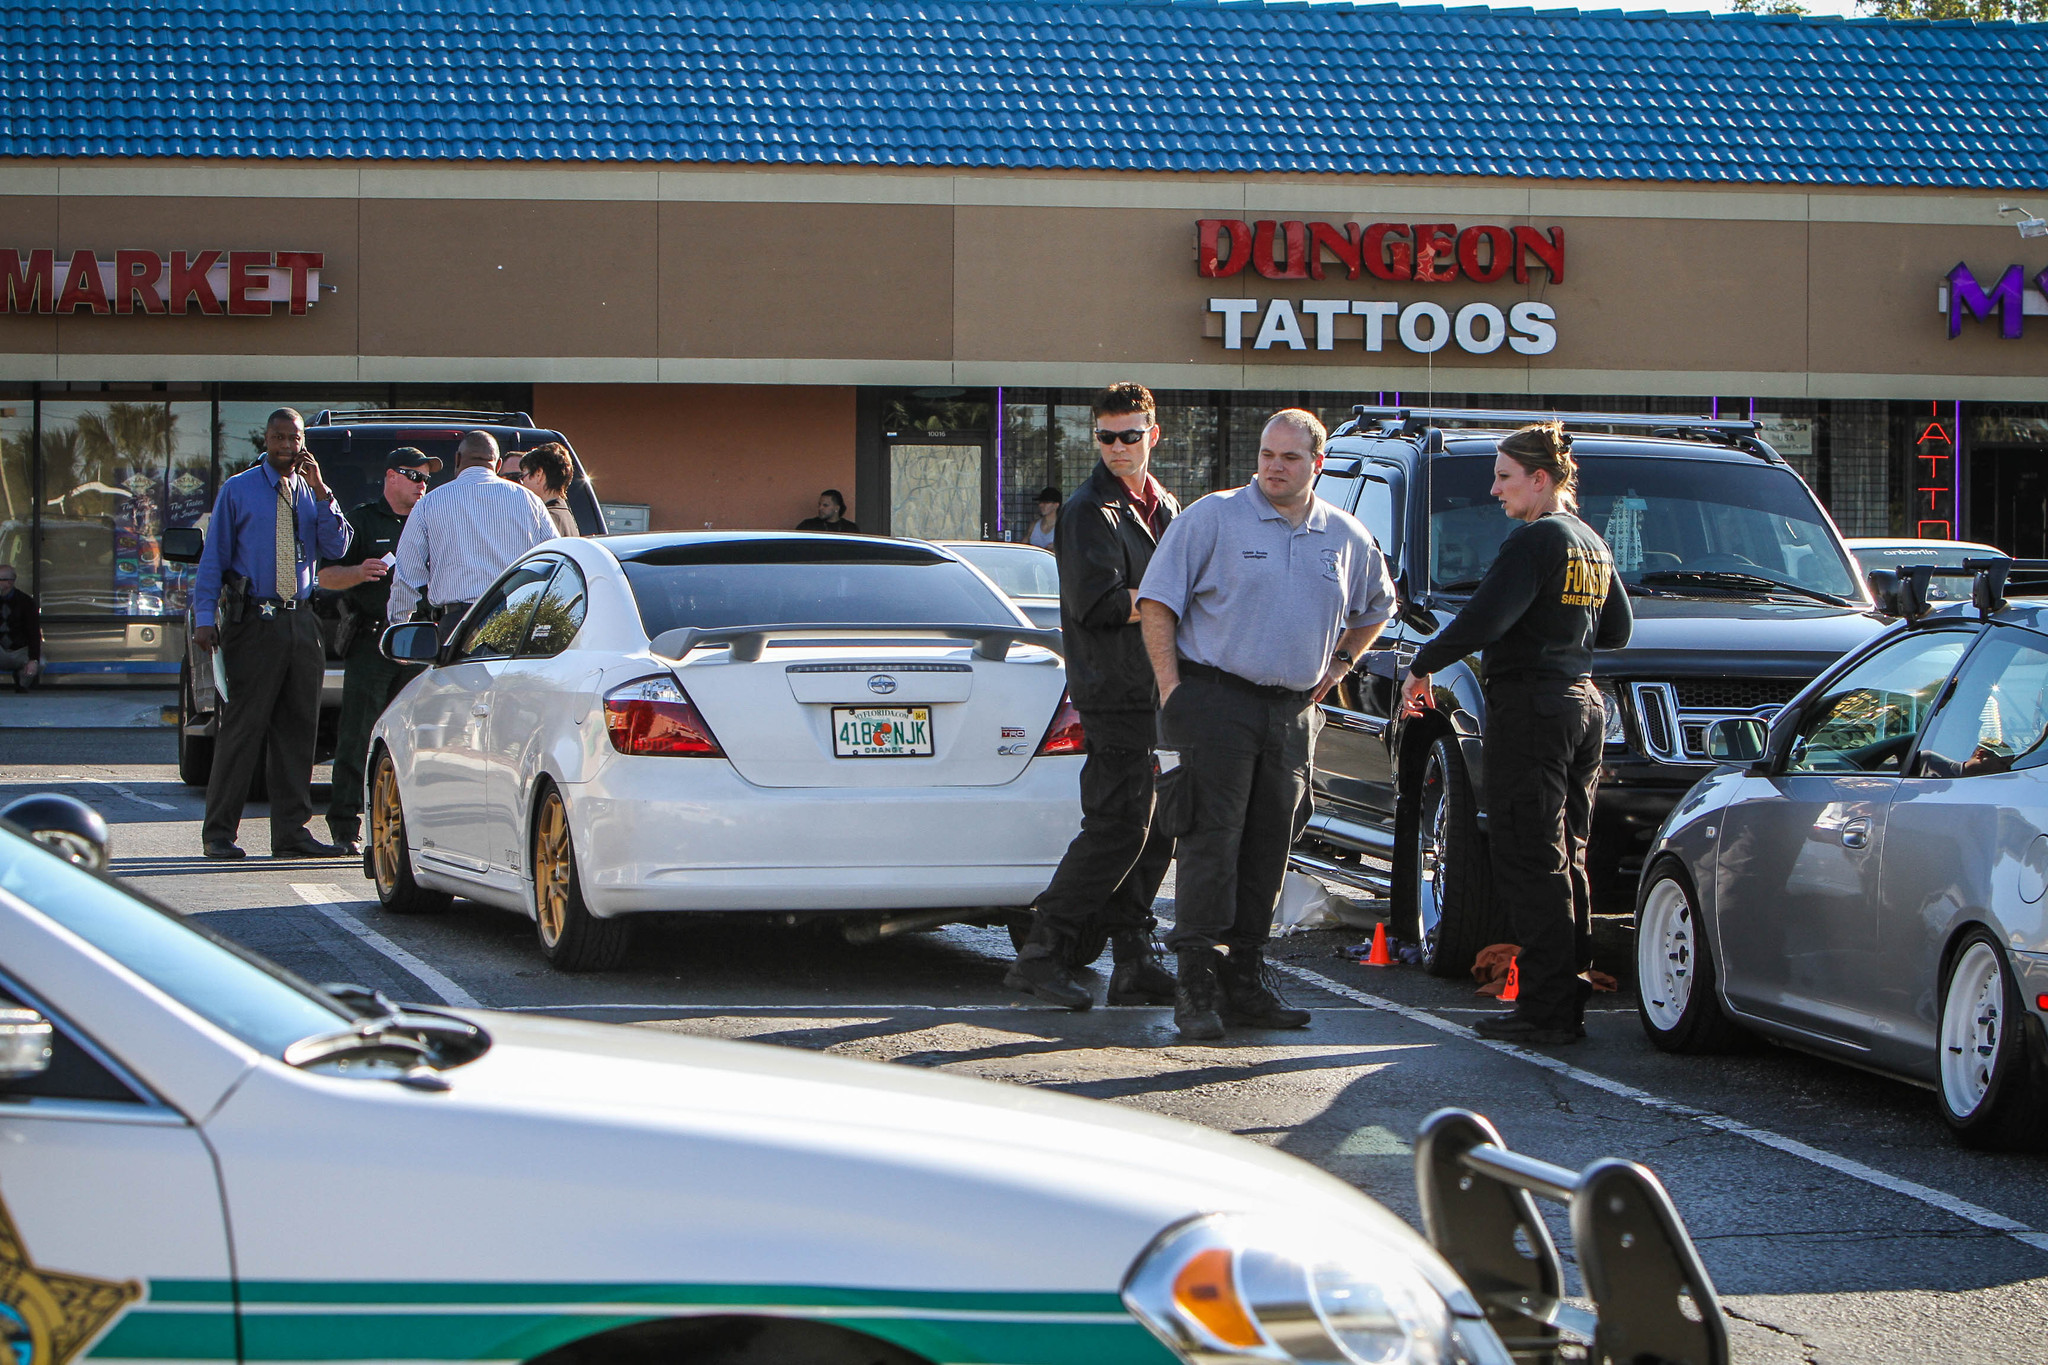 The Orange County Sheriff's office investigates a shooting at the University Oaks Shopping Plaza in Orlando, Fla. on Friday, November 23, 2012.